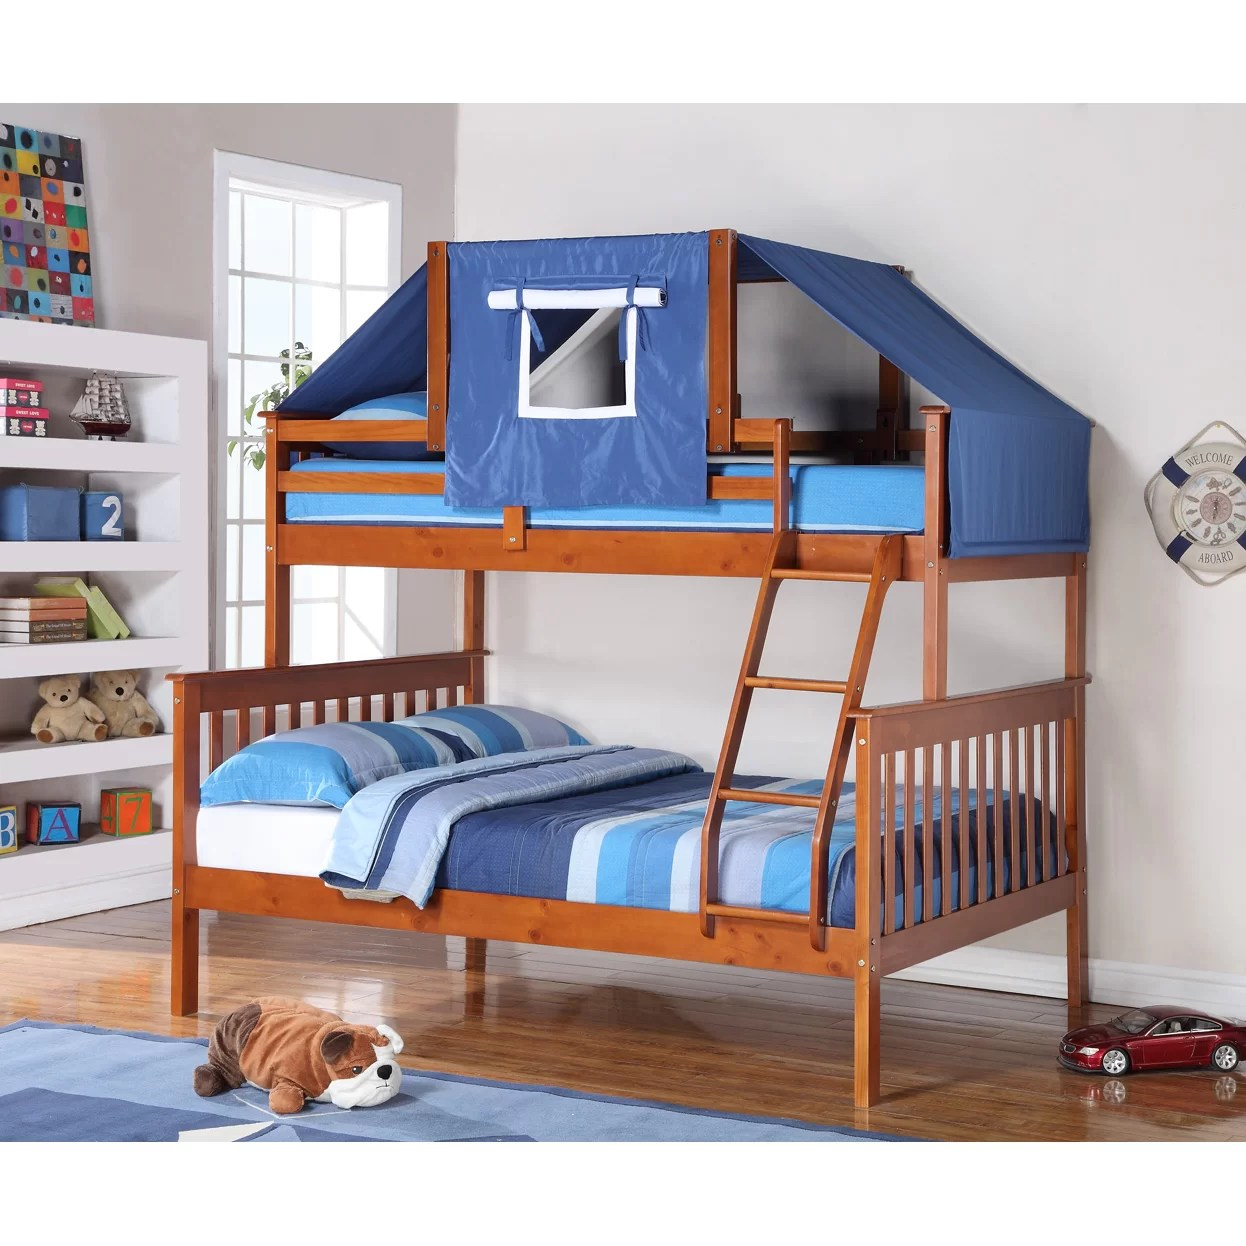 loft bed with chair futon how to install rail molding on stairs donco kids twin over full bunk